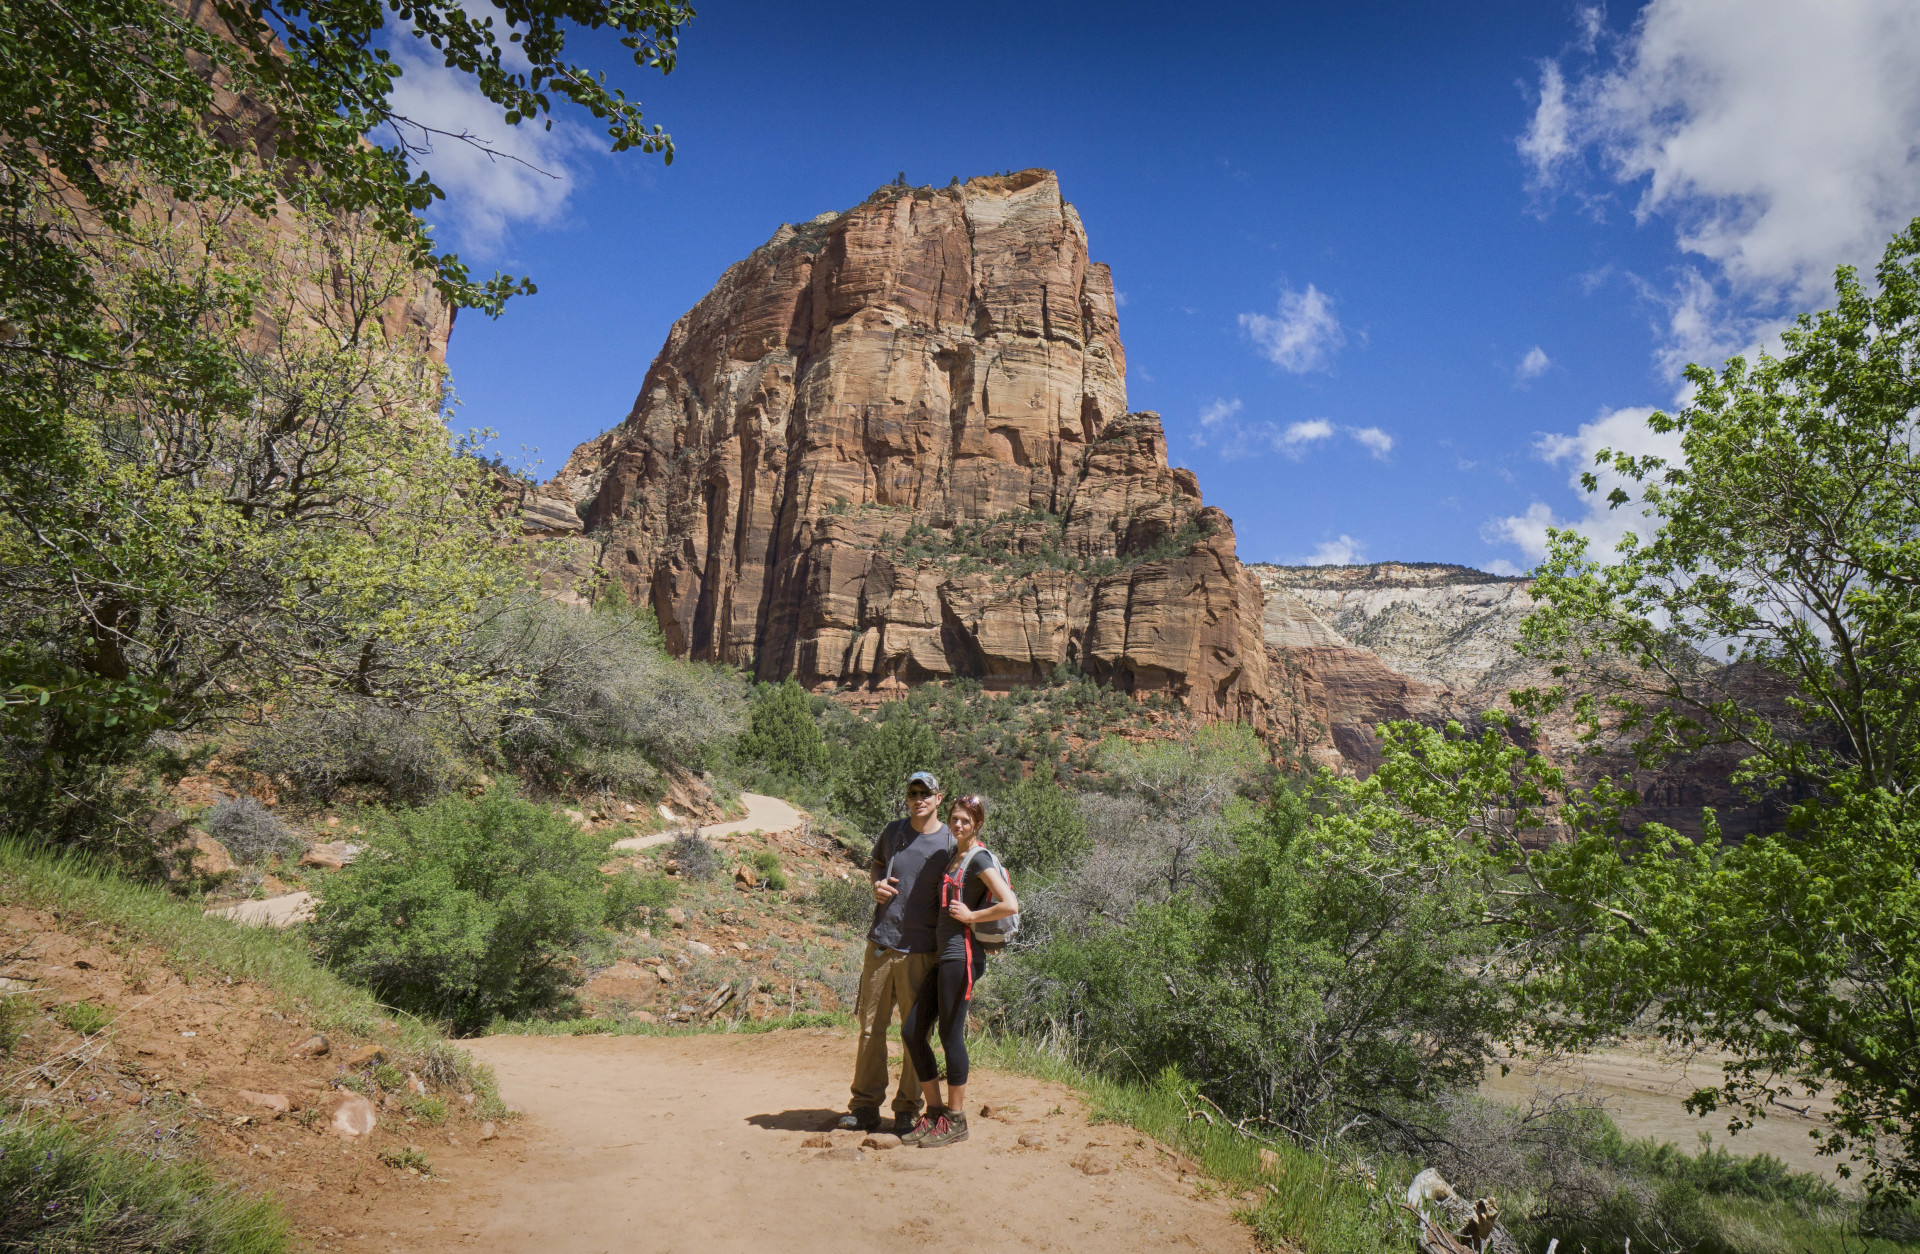 A shot of me and my girlfriend before hiking up to angels landing